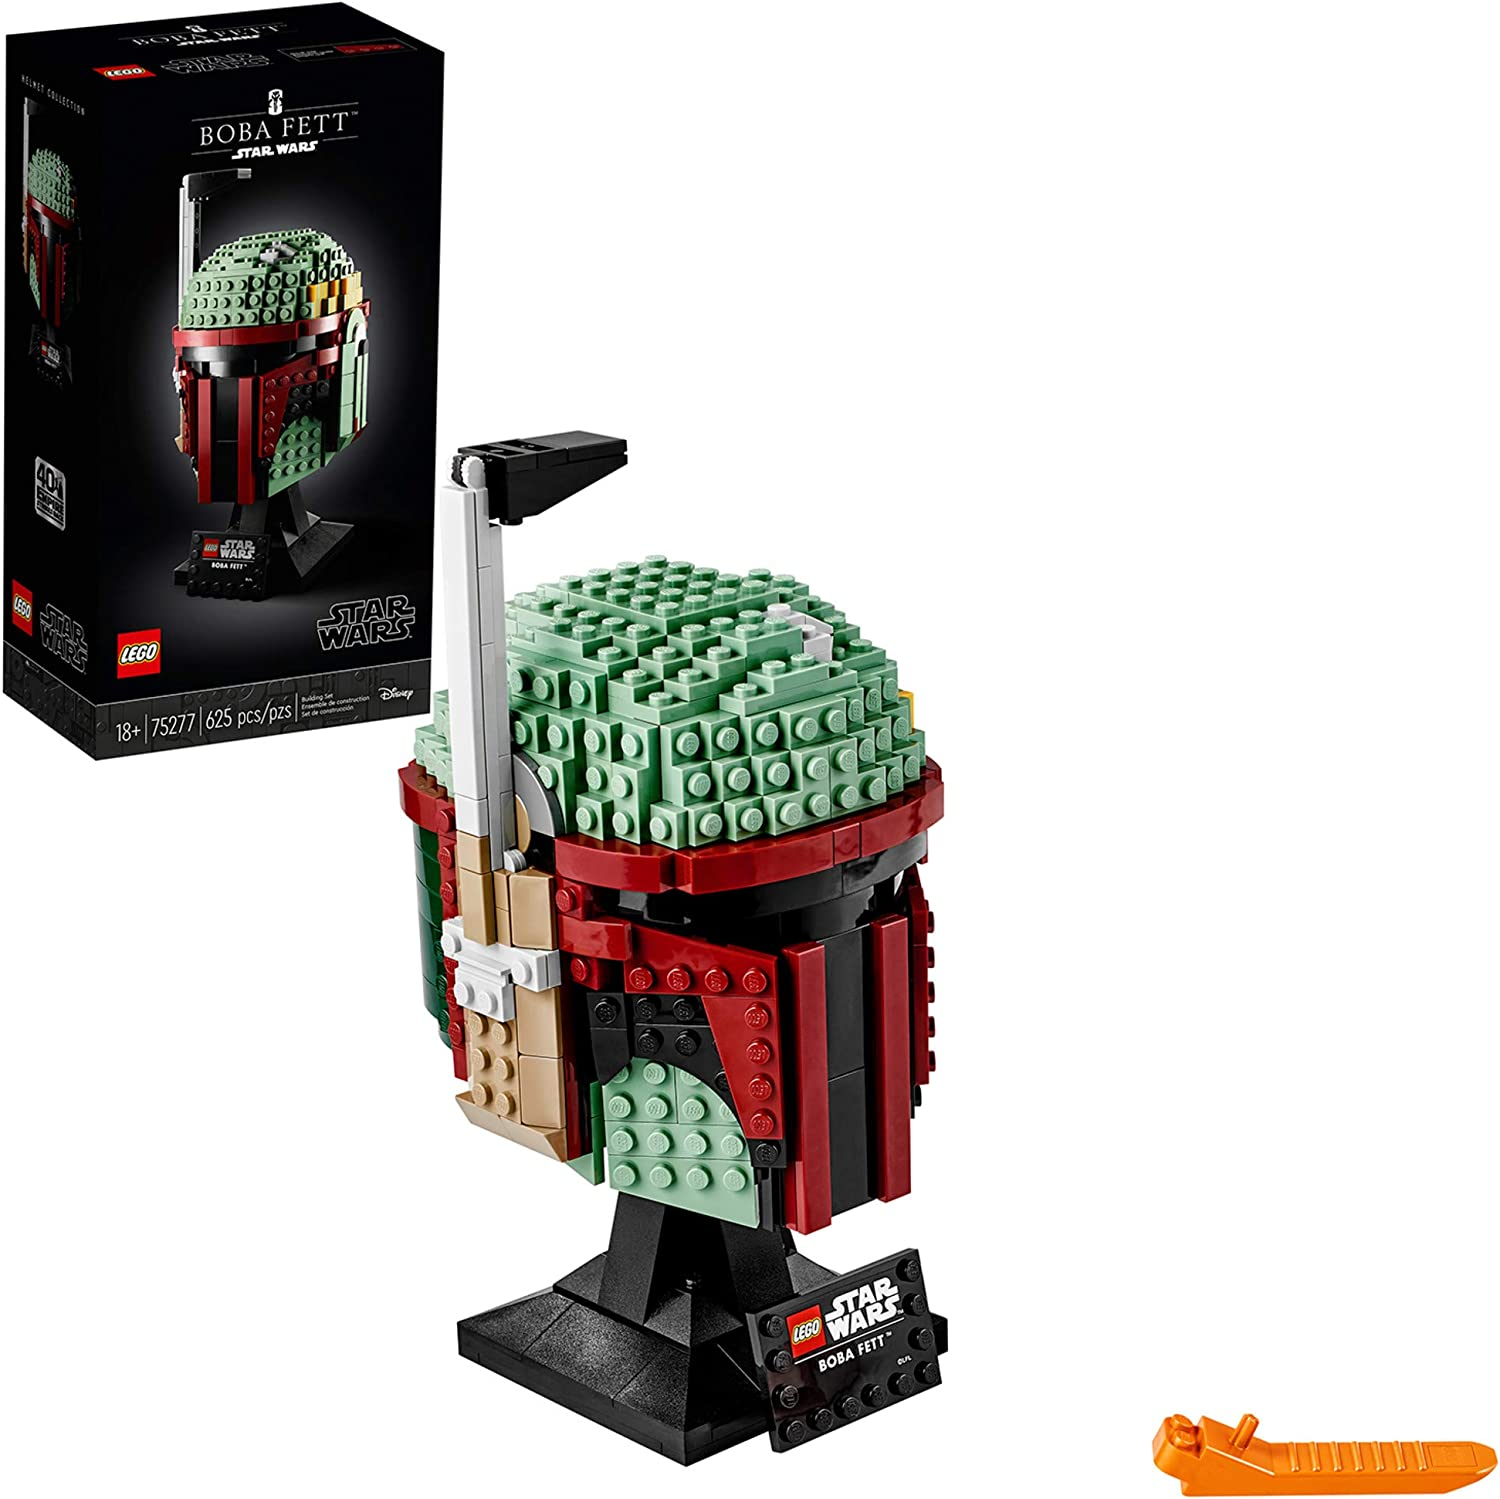 LEGO Star Wars Boba Fett Helmet 75277 Building Kit, Cool, Collectible Star Wars Character Building Set, New 2020 (625 Pieces): Toys & Games